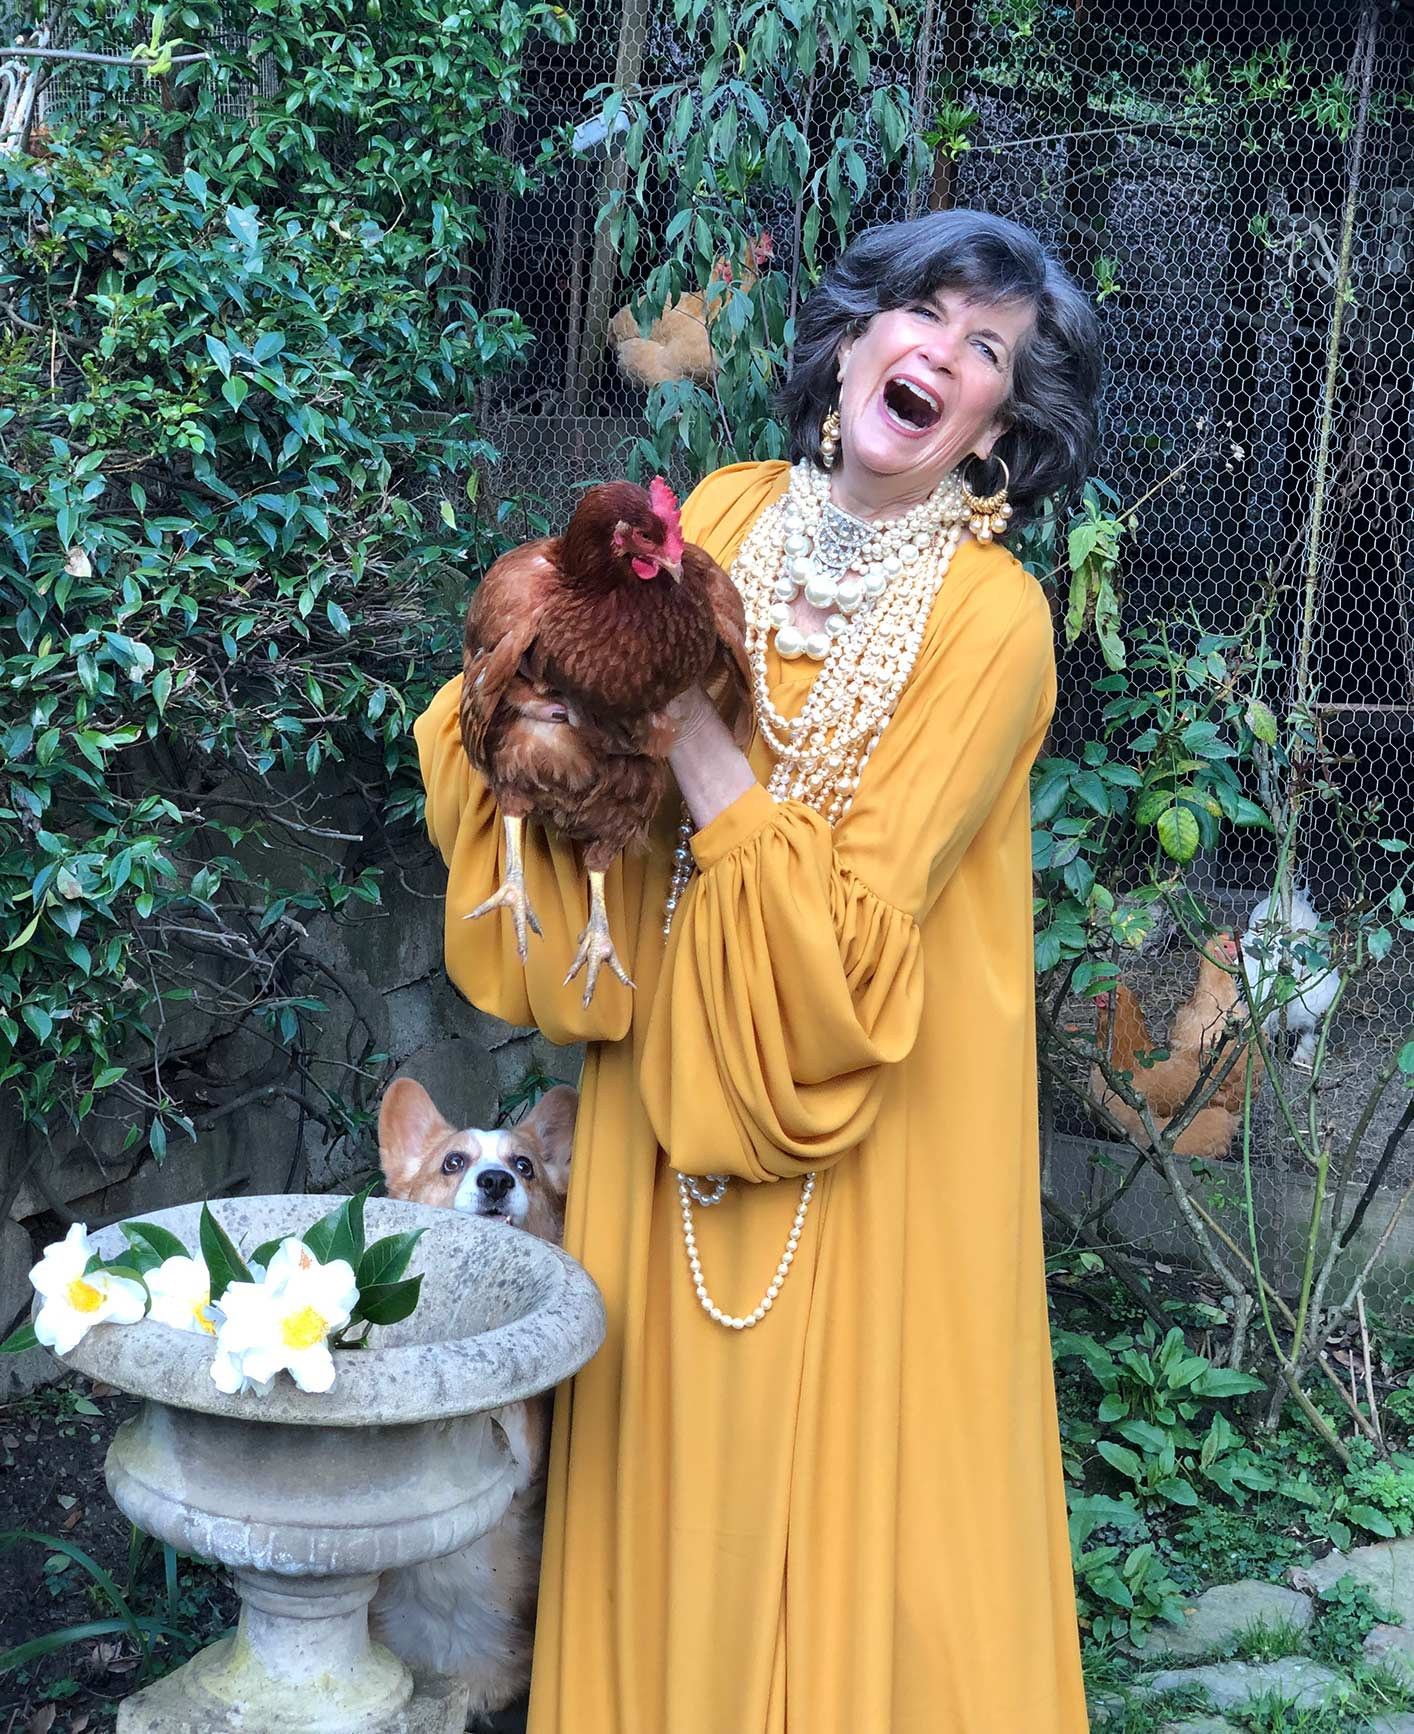 The contessa has a blog where you can see her grand looks, her pig, hens, dogs, garden and her husband, The Italian. Ciao!